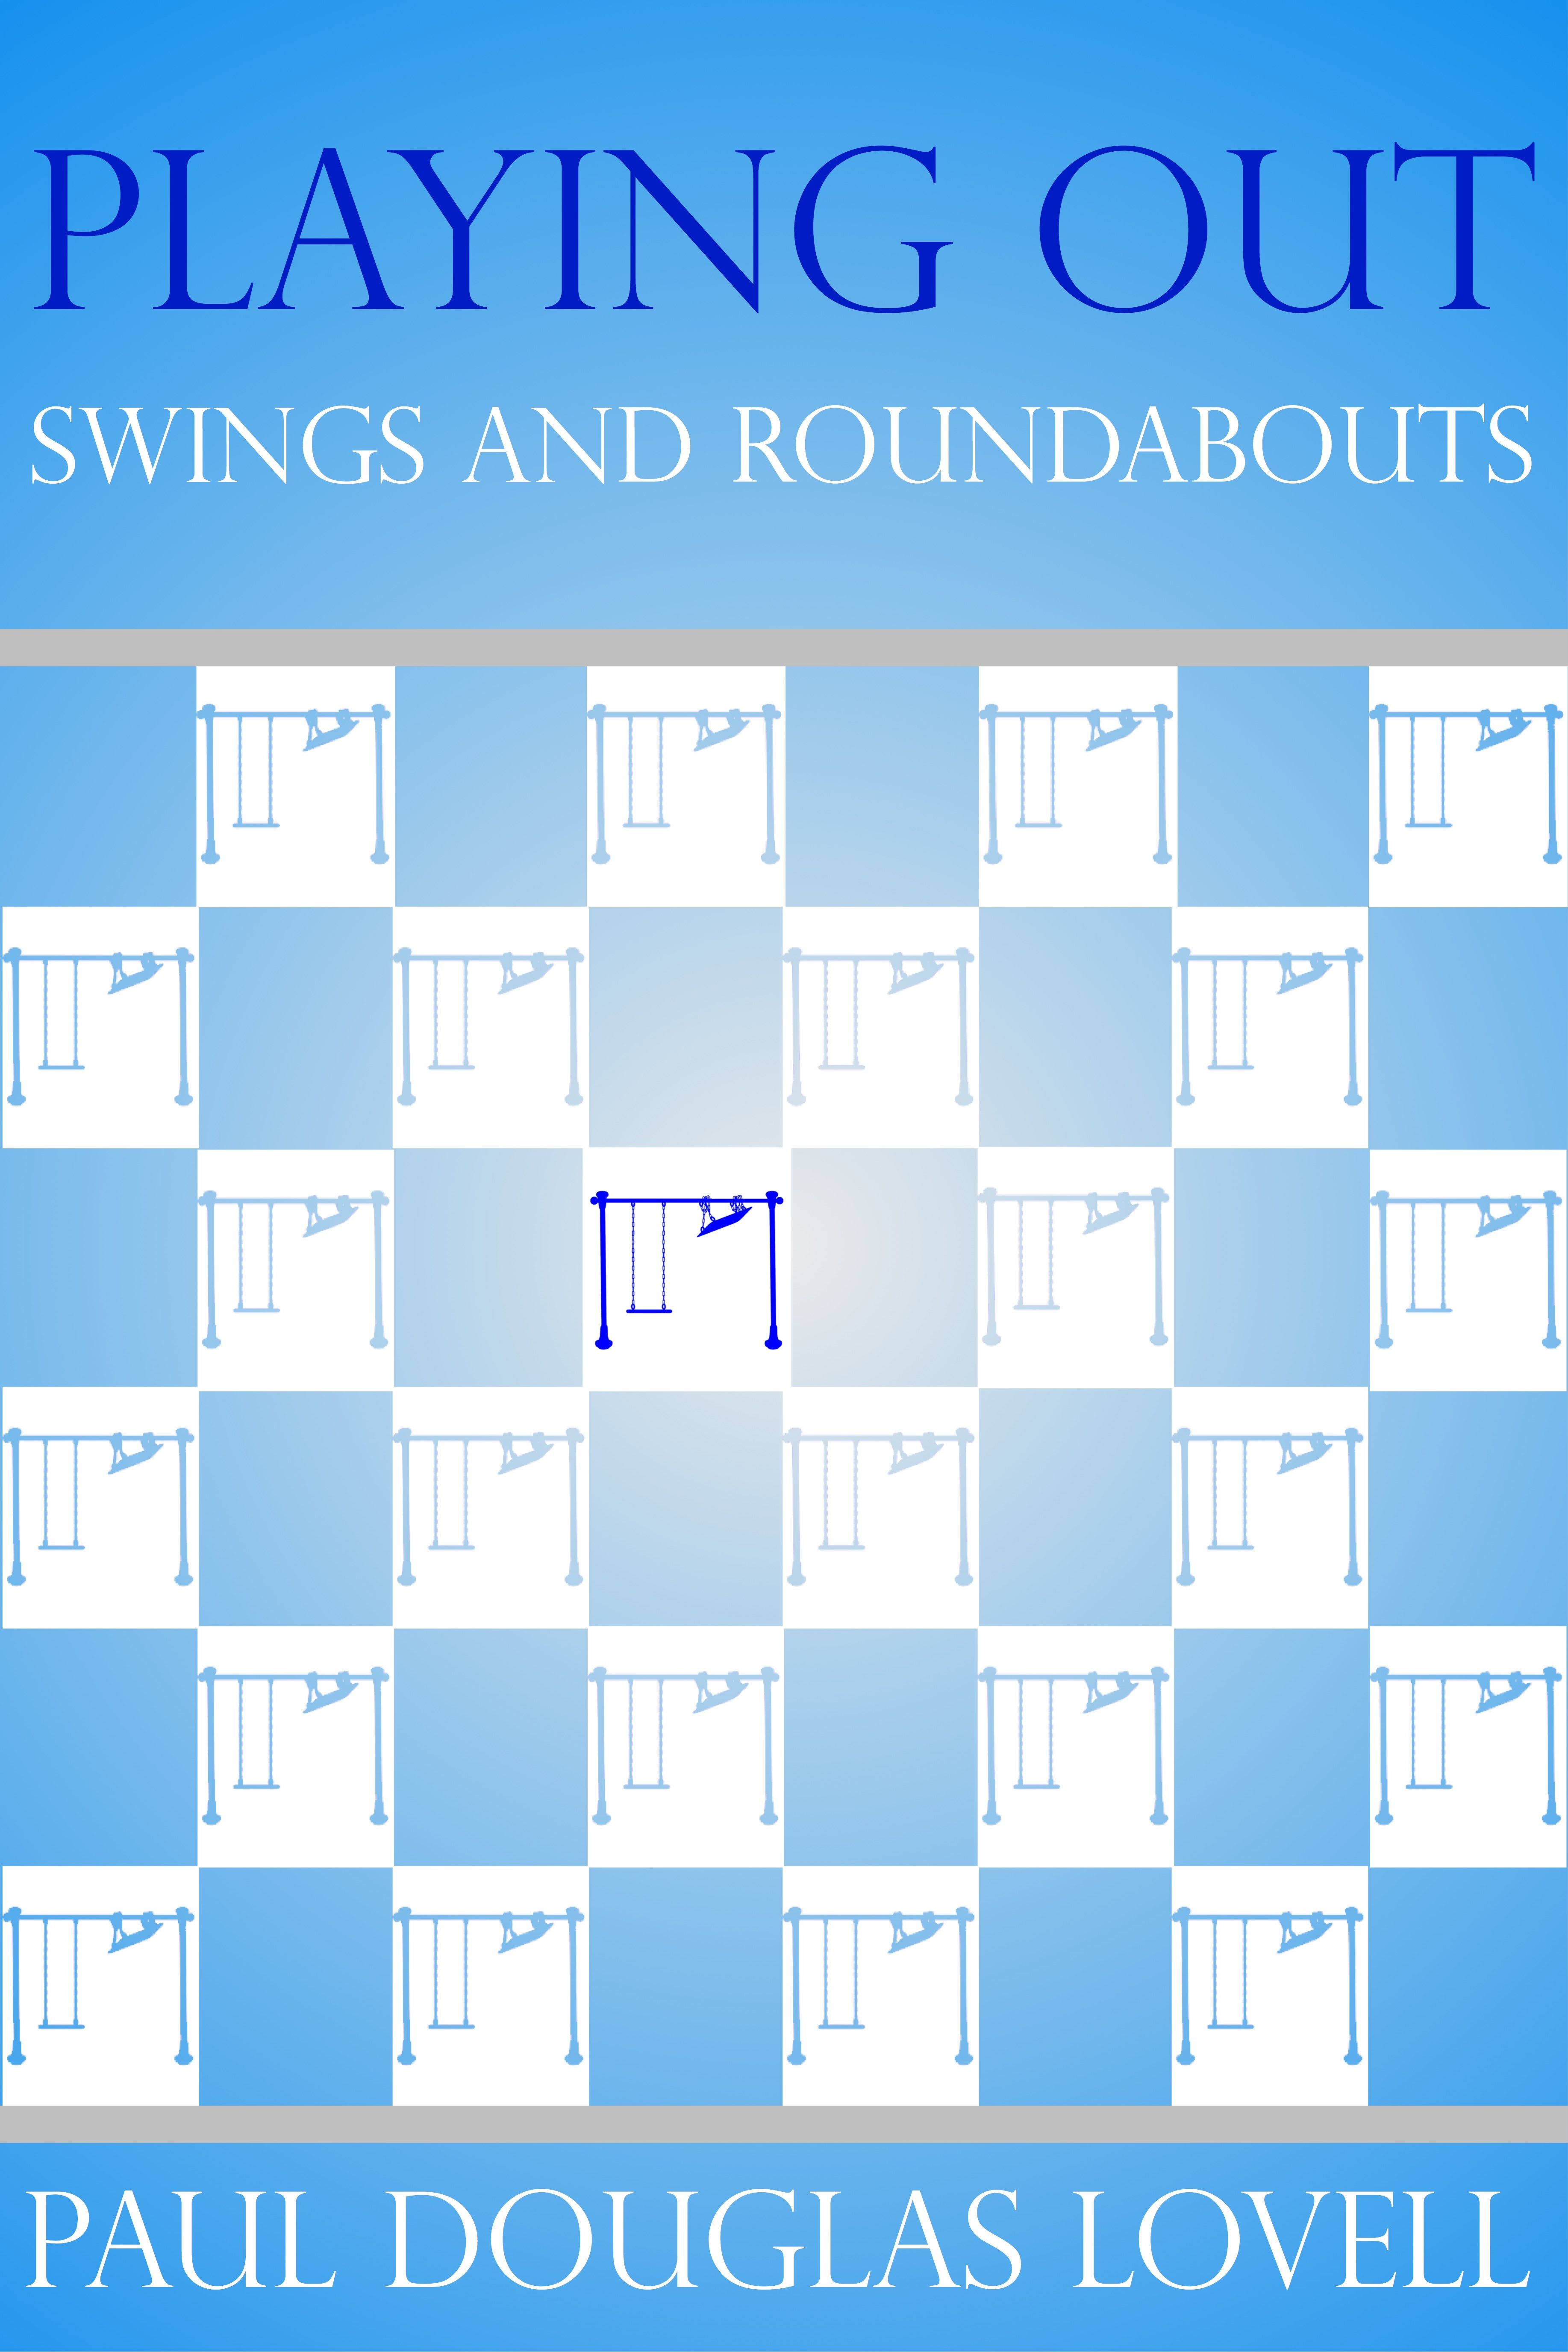 Playing Out Swings and Roundabouts's Ebook Image